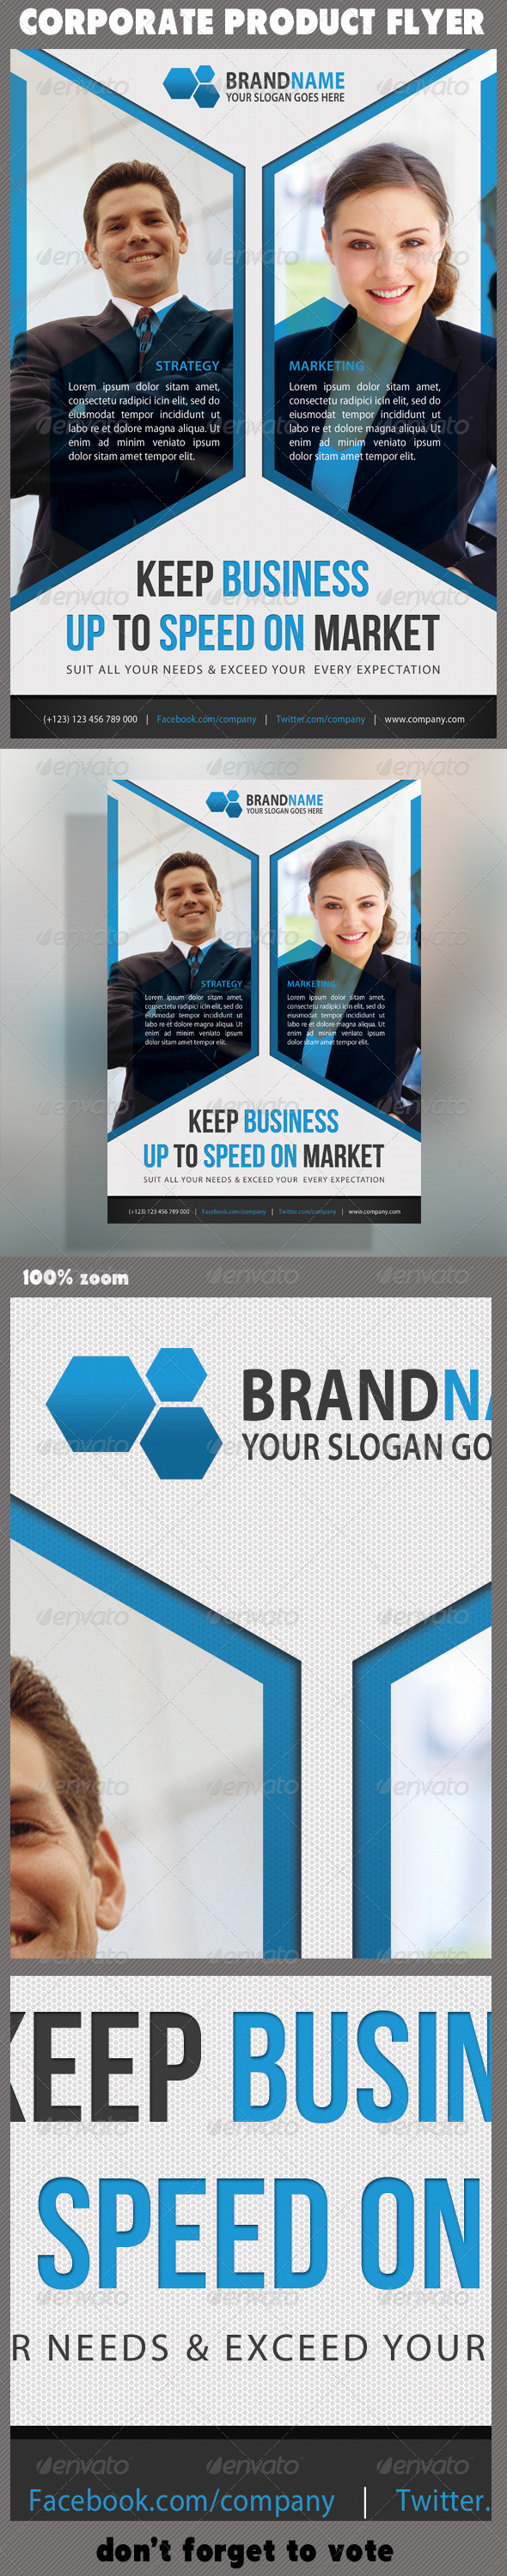 GraphicRiver Corporate Product Flyer 33 5853230